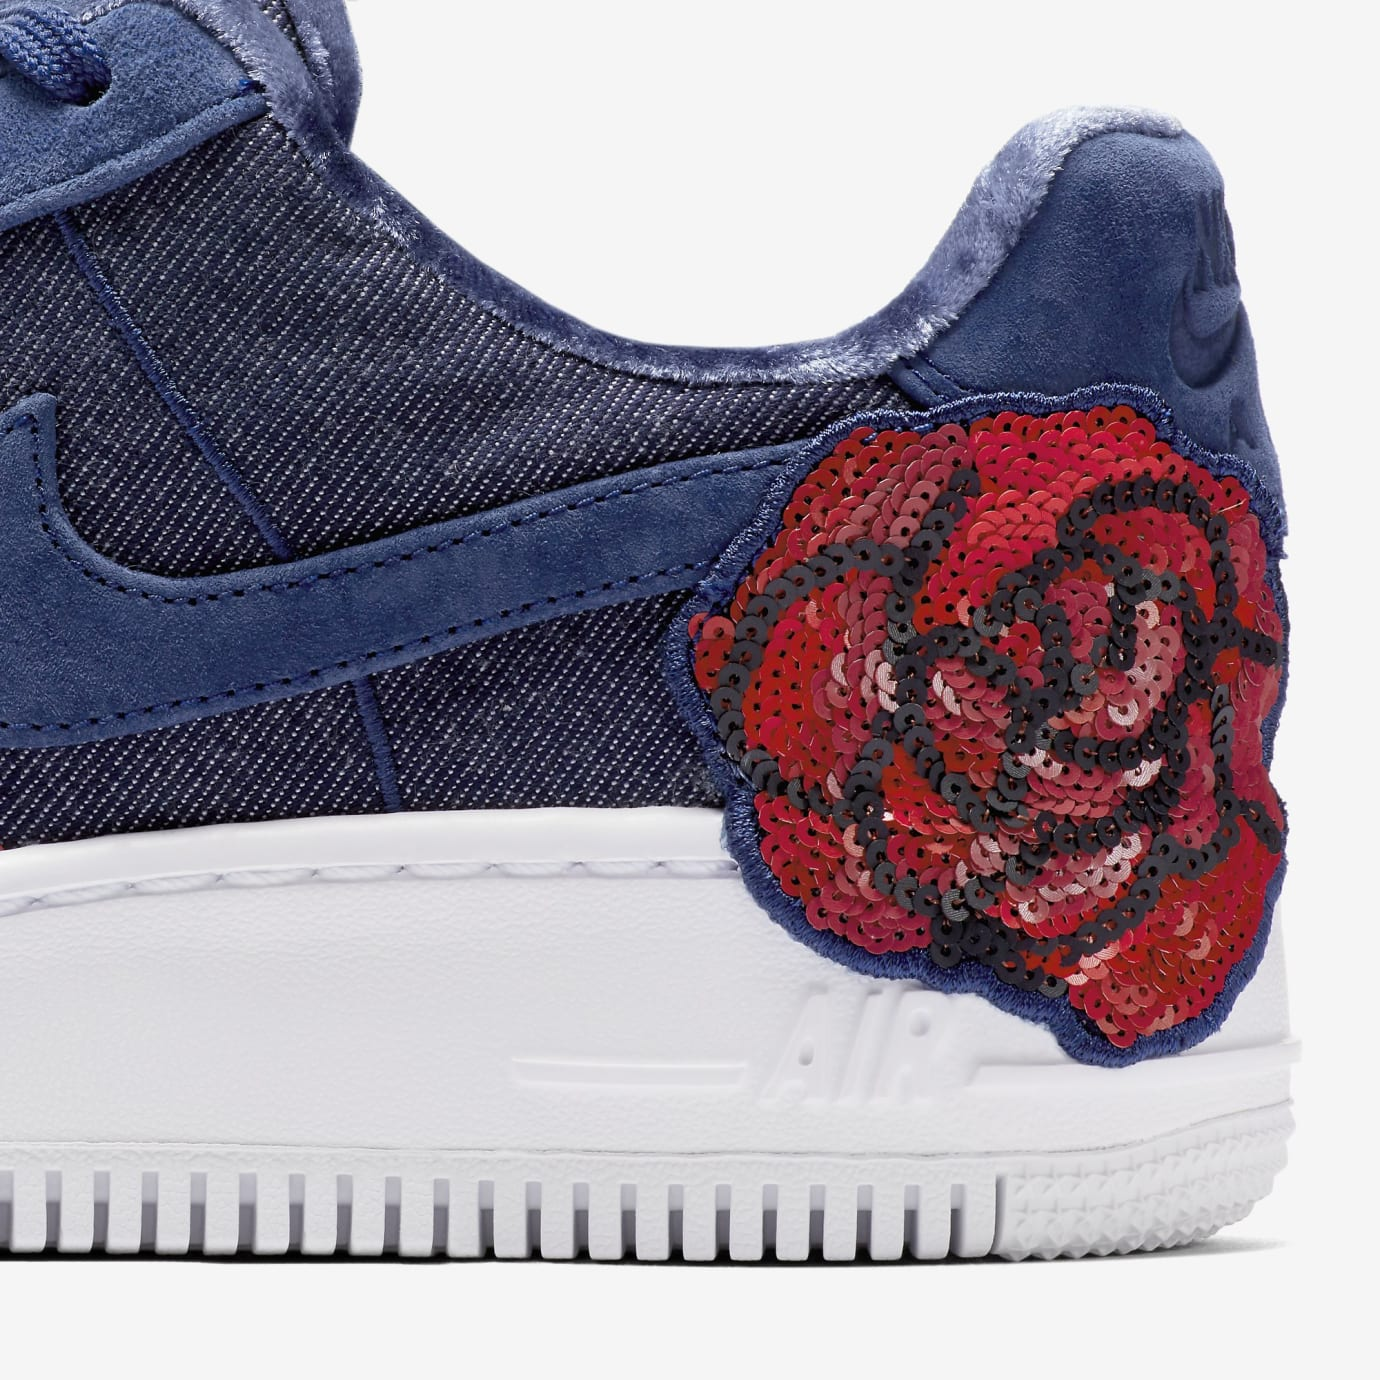 Nike Air Force 1 Low Floral Sequin Pack 898421-401 (Detail)